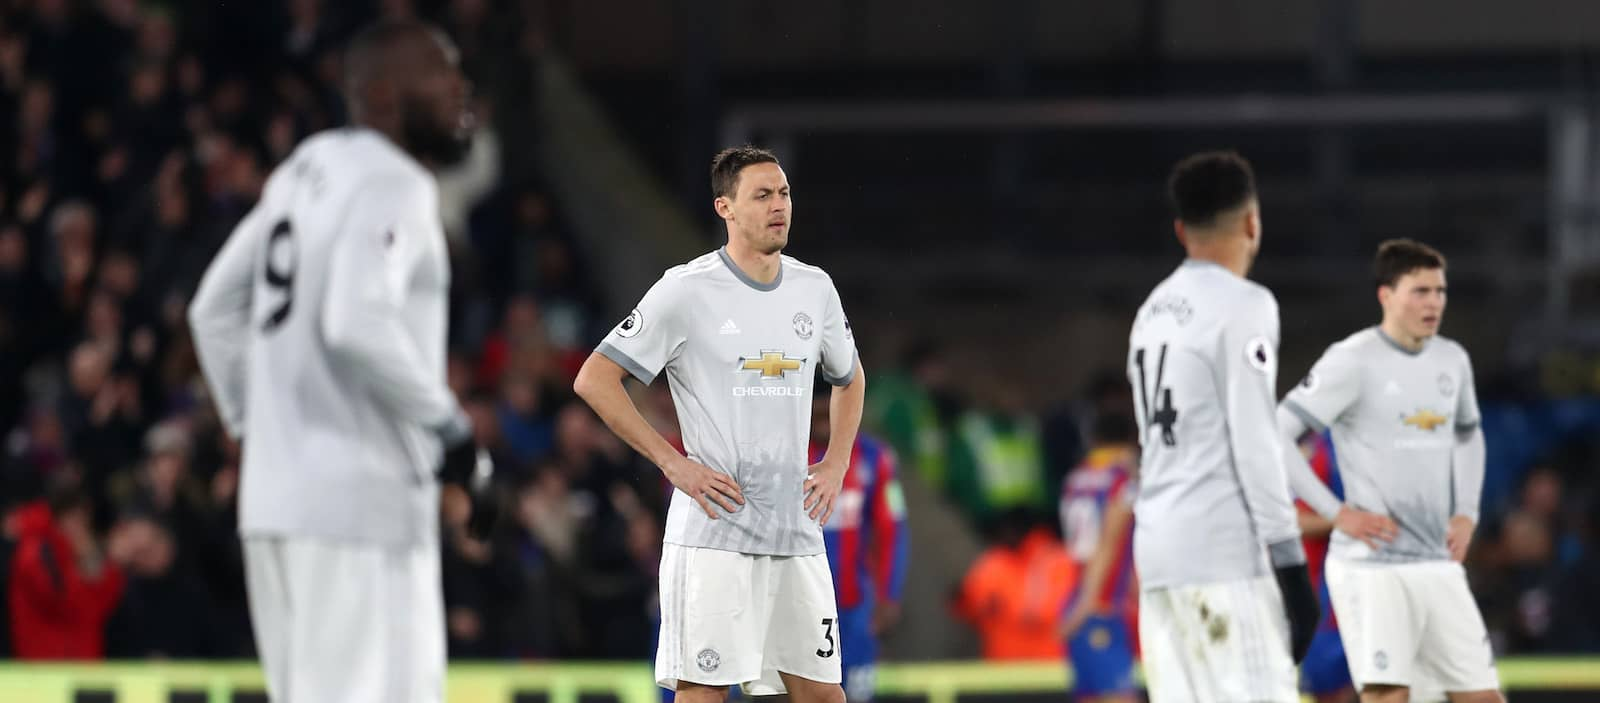 Manchester United fans ecstatic after Nemanja Matic's performance vs Crystal Palace